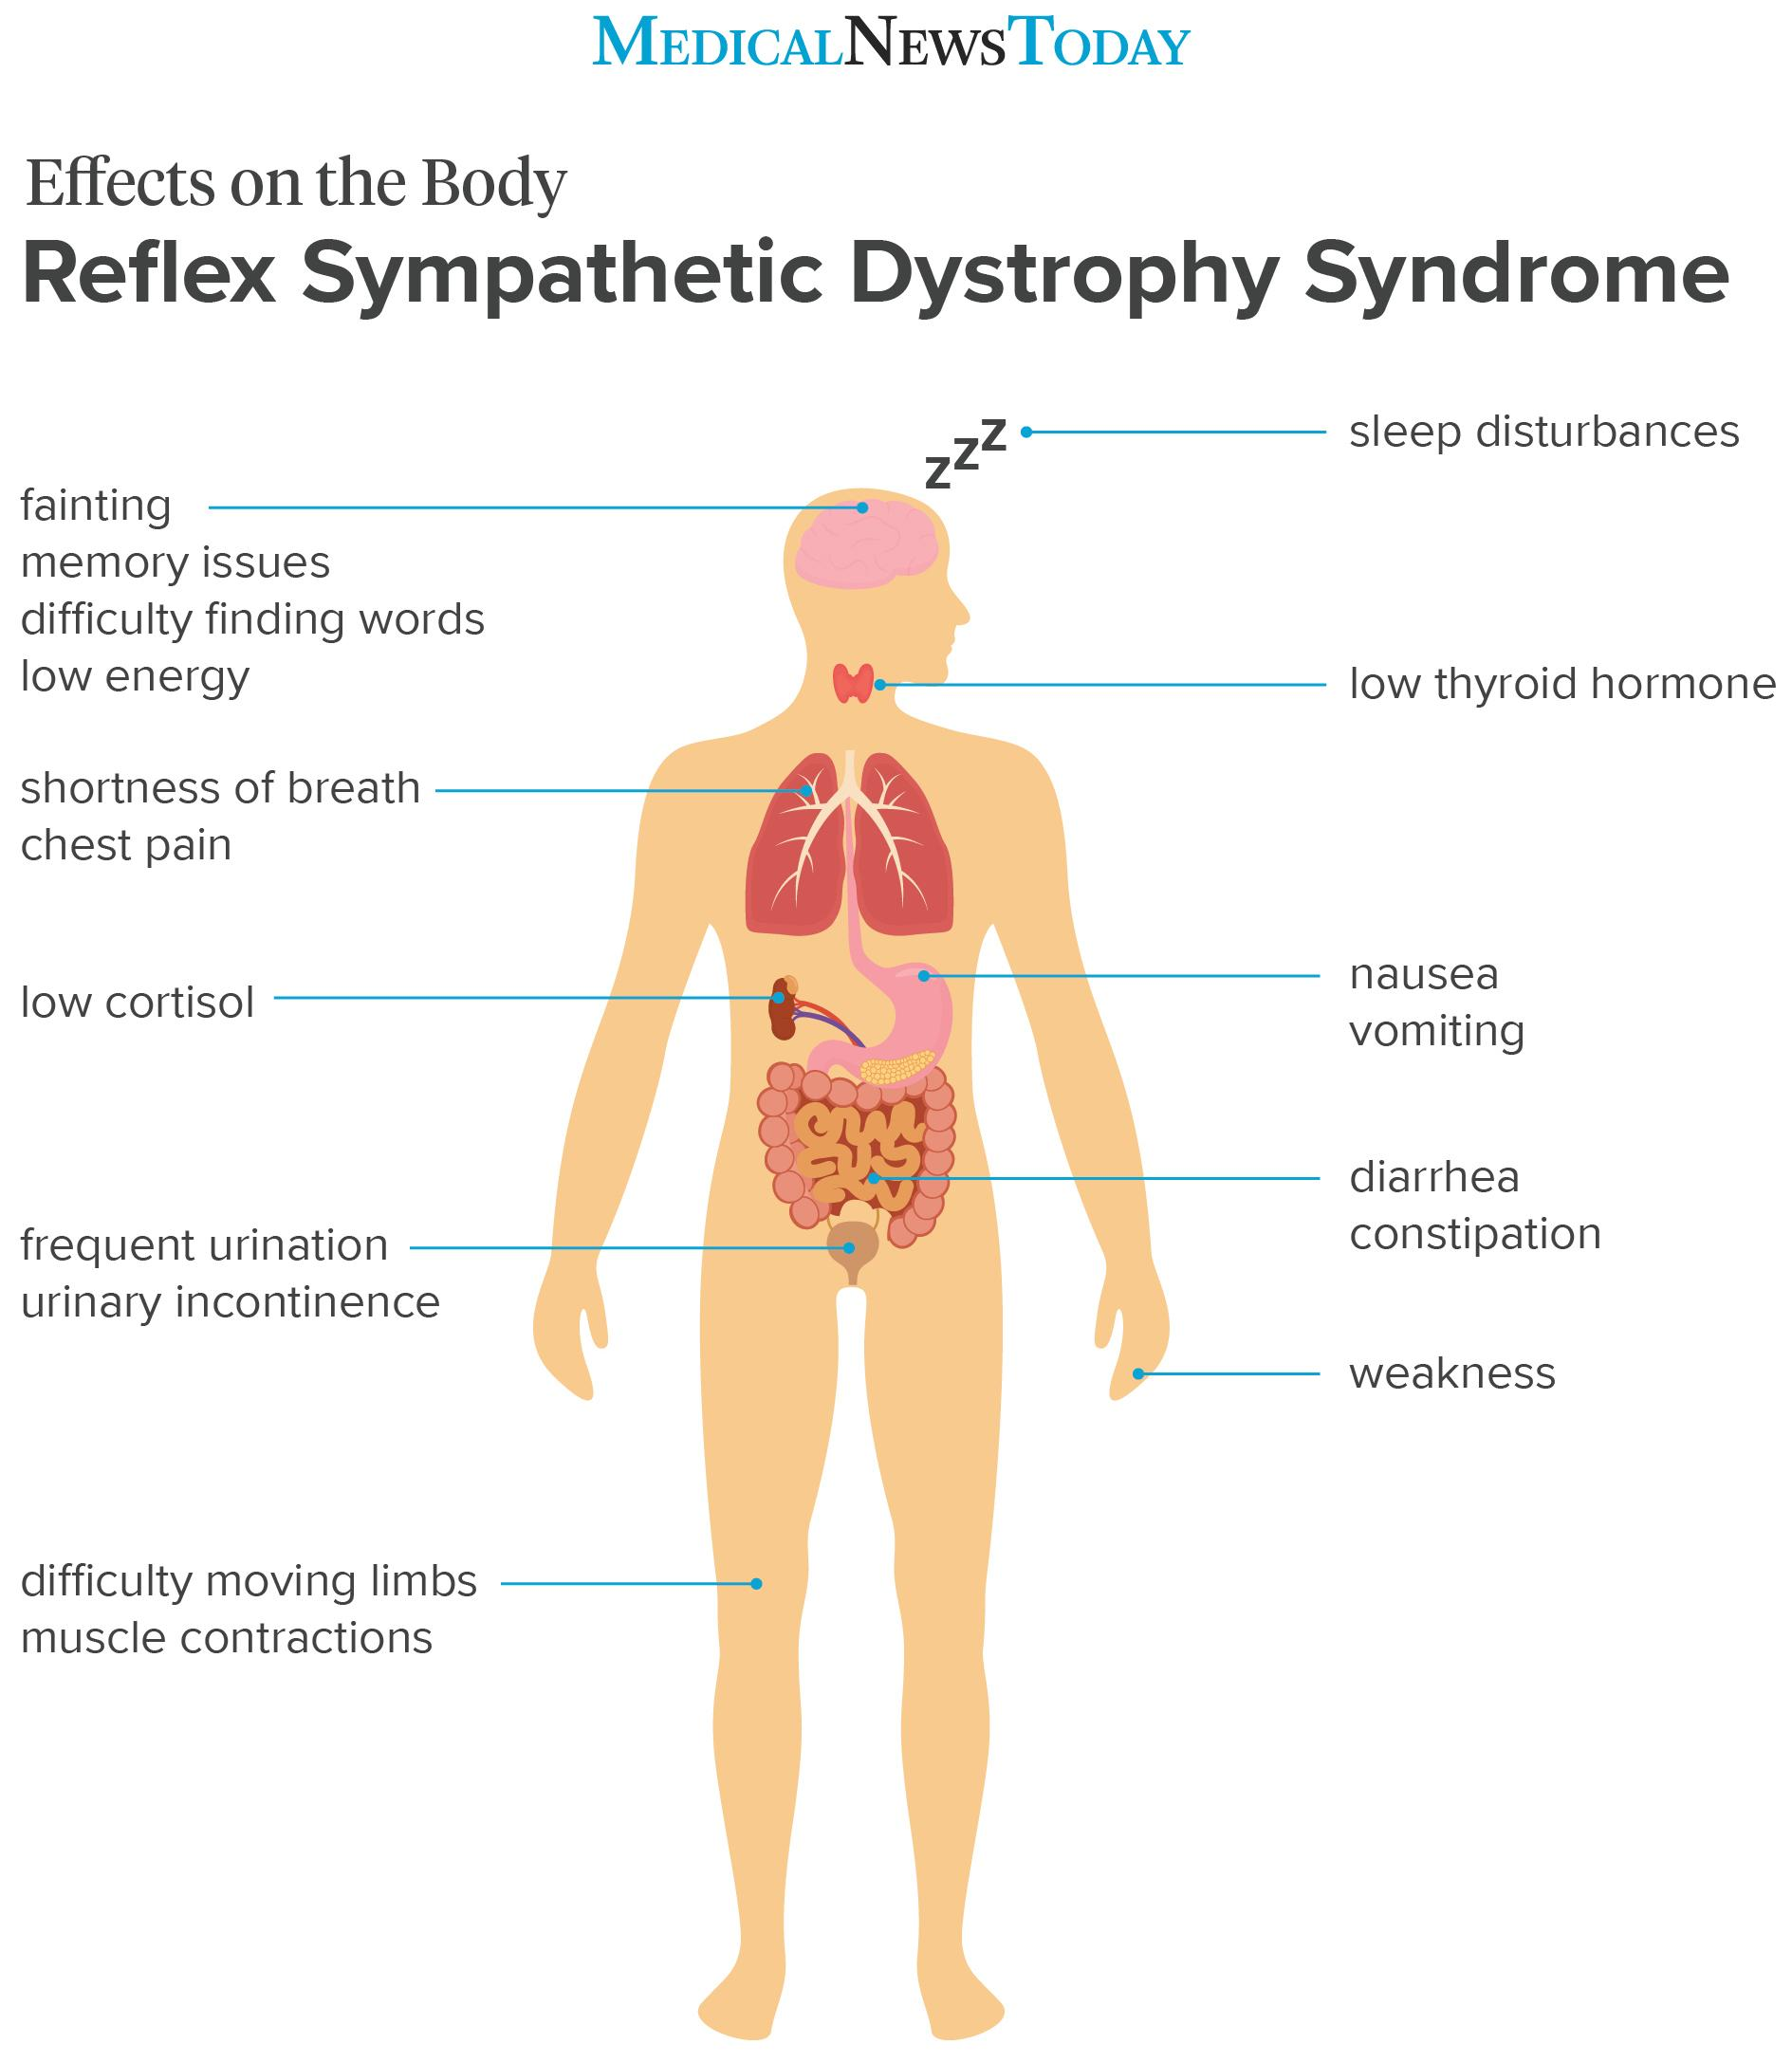 an infographic showing the effects on the body of RSD